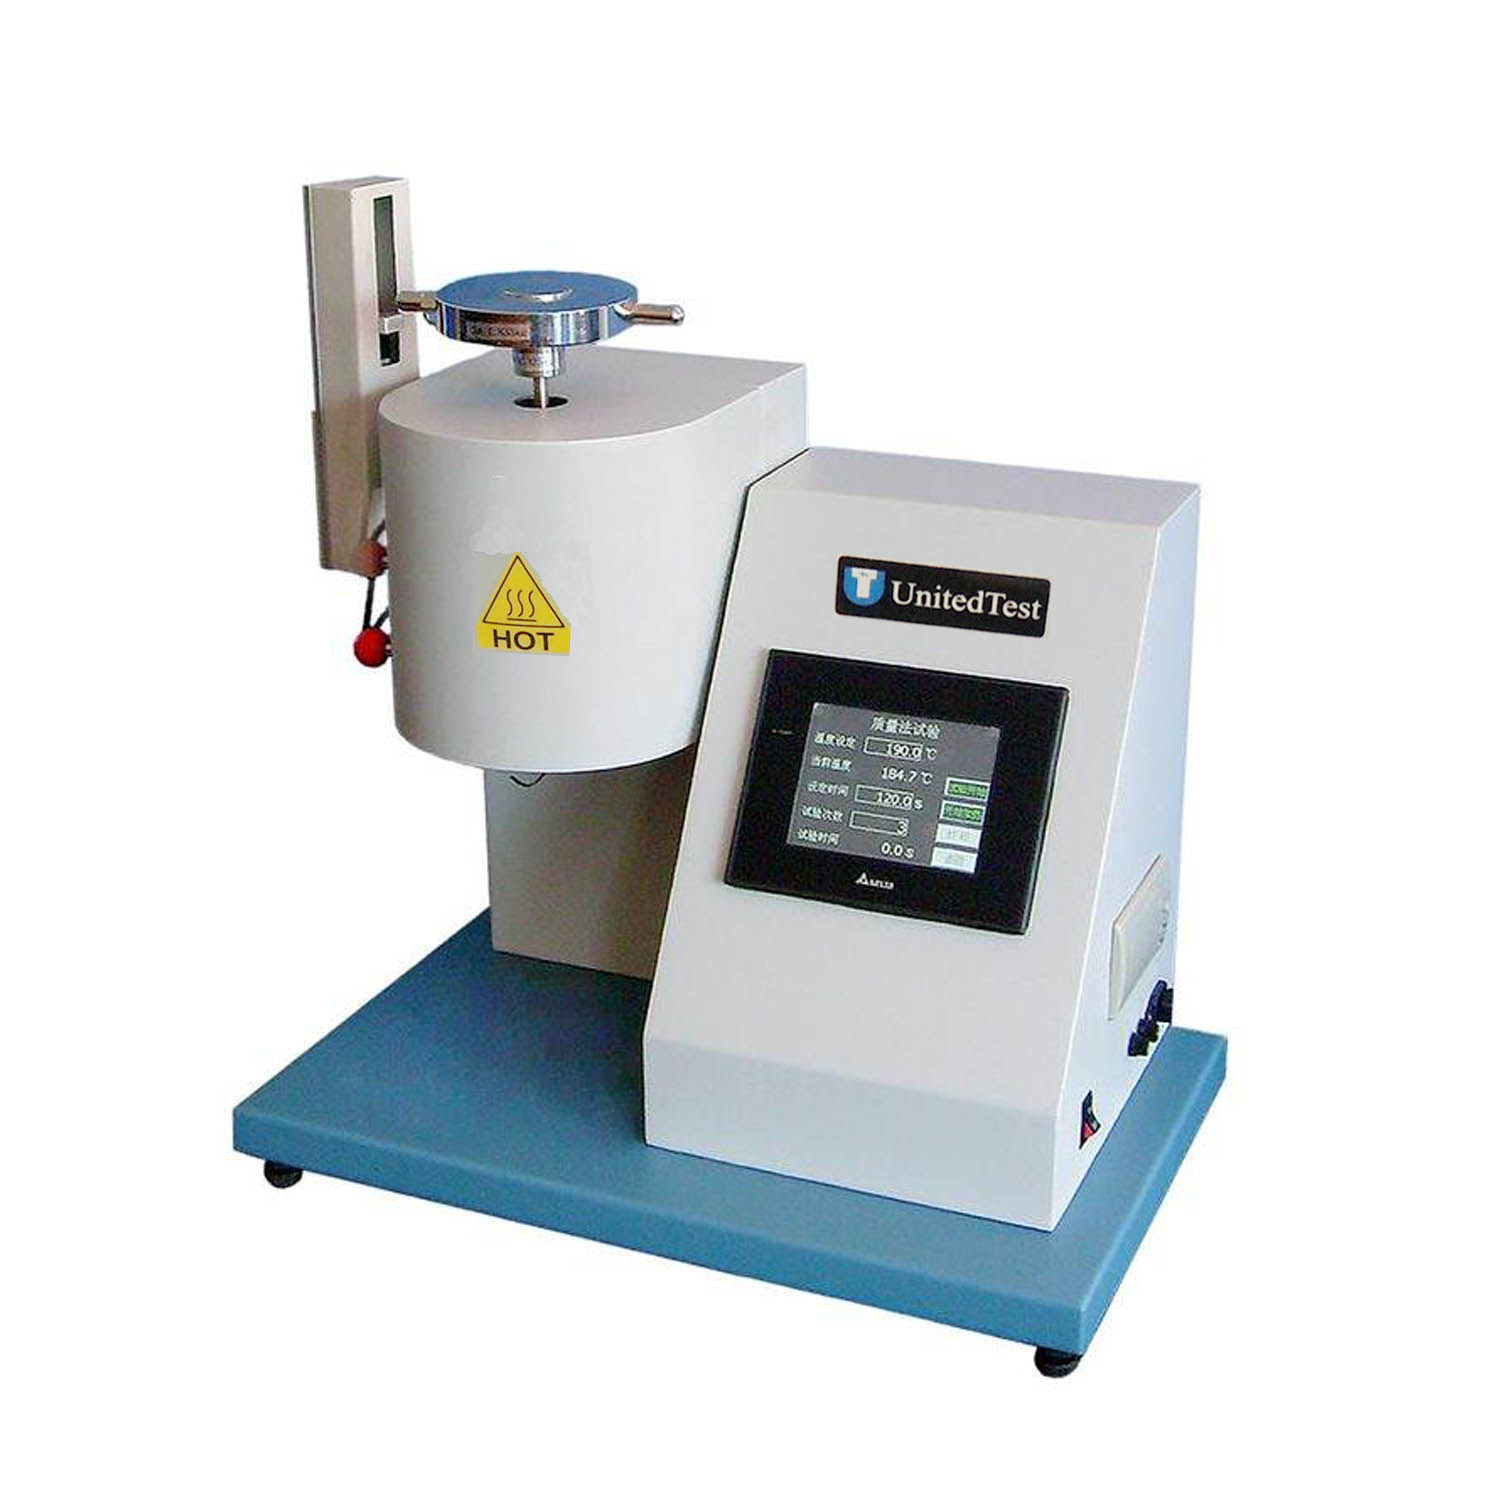 MFI404 Melting flow tester (Touching screen)